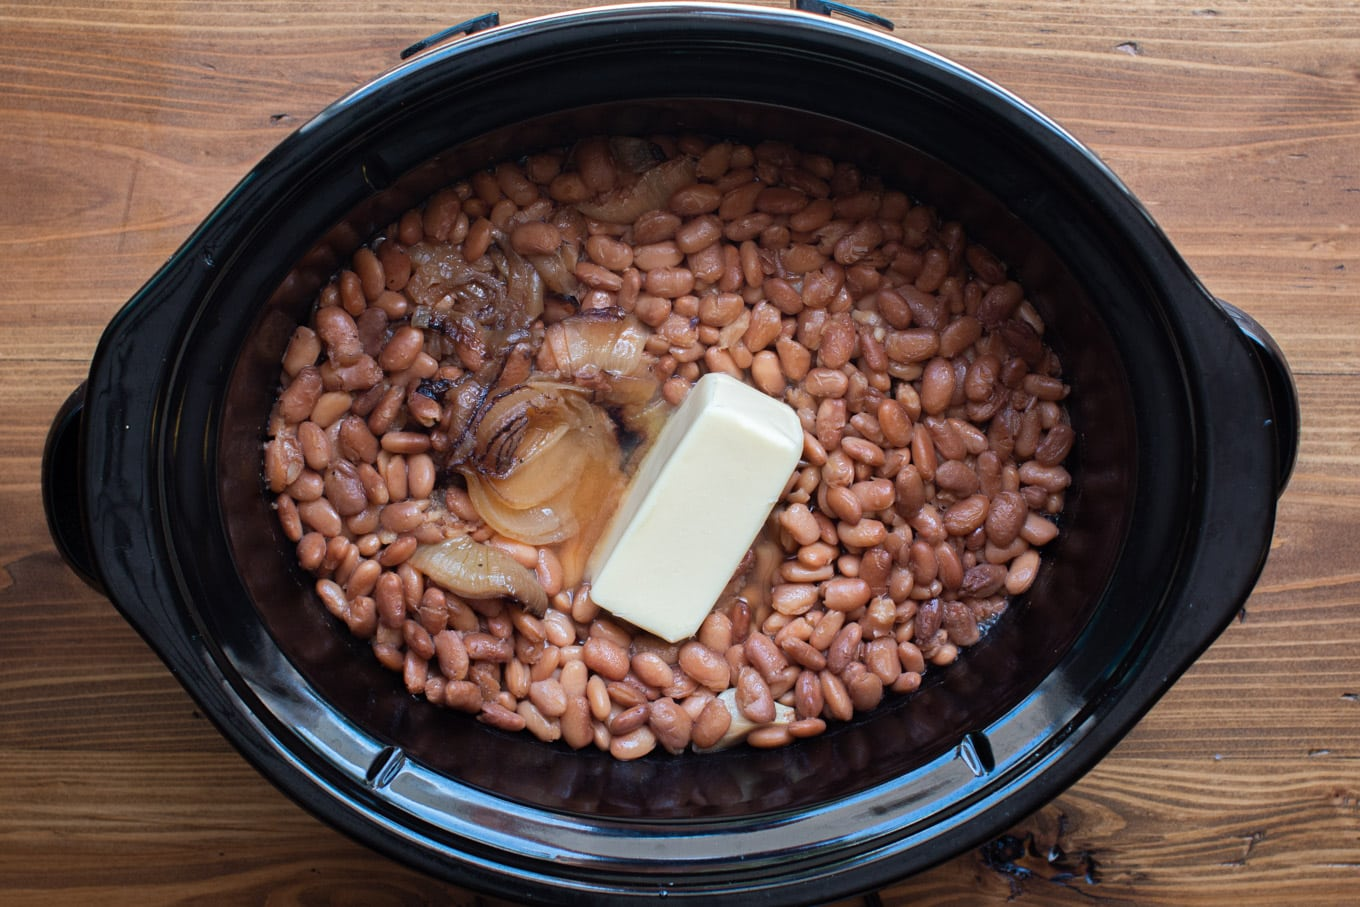 cooked pinto beans that have most of liquid drained off. Stick of butter on top.